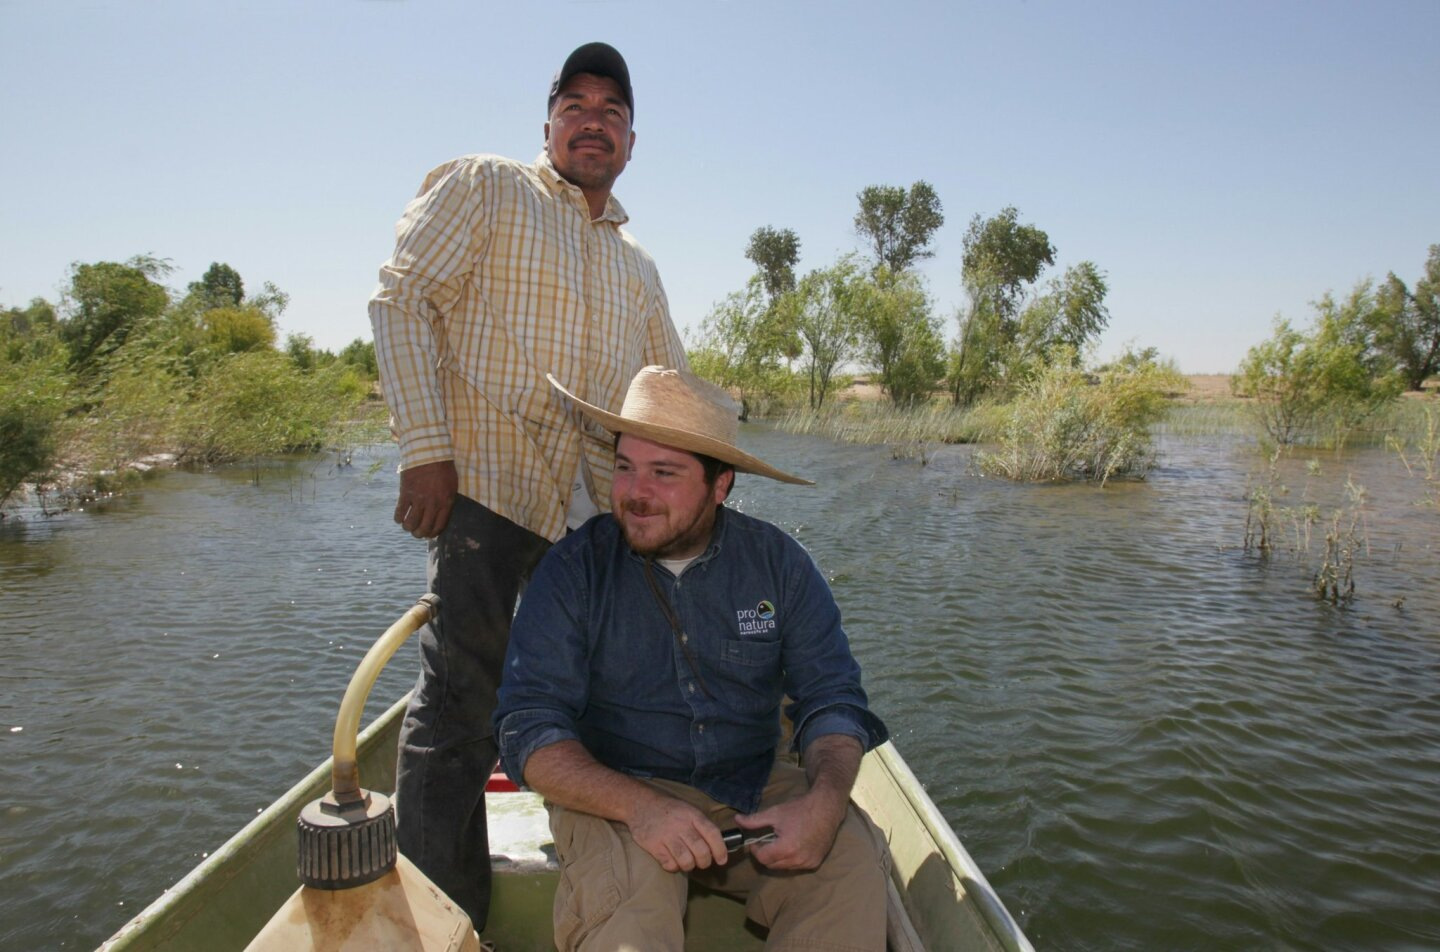 Water release brings life to River Delta